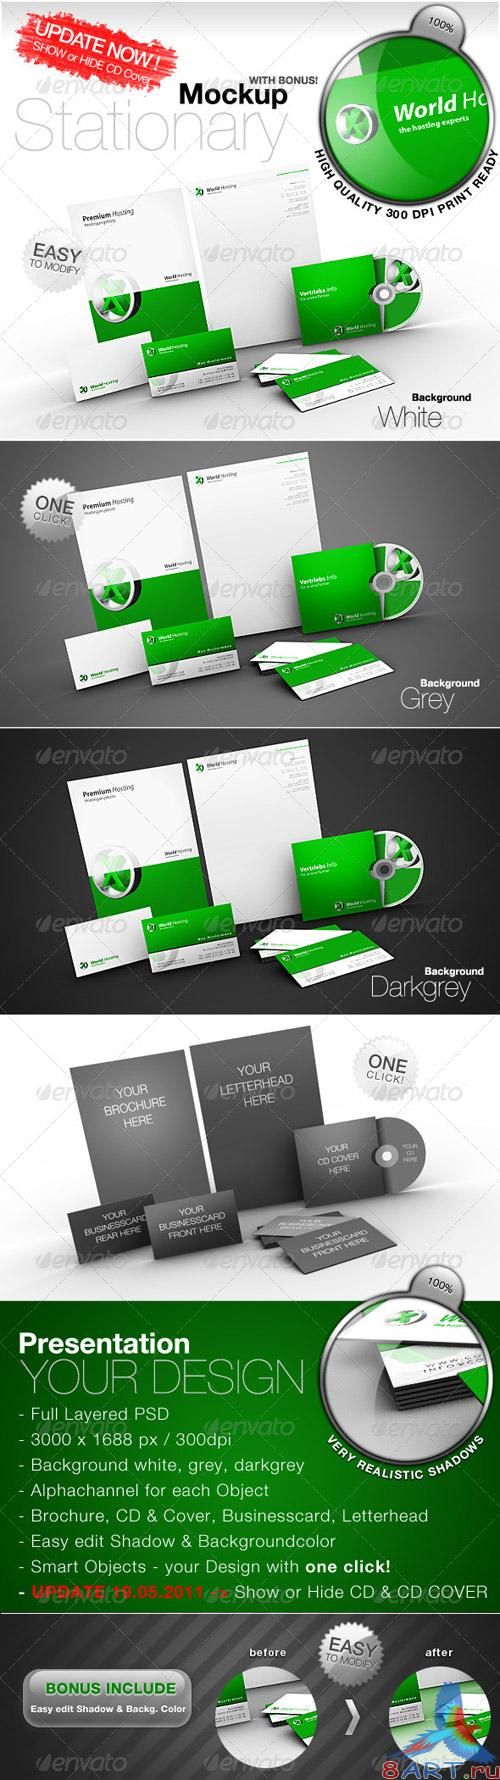 Stationary Mockup - GraphicRiver